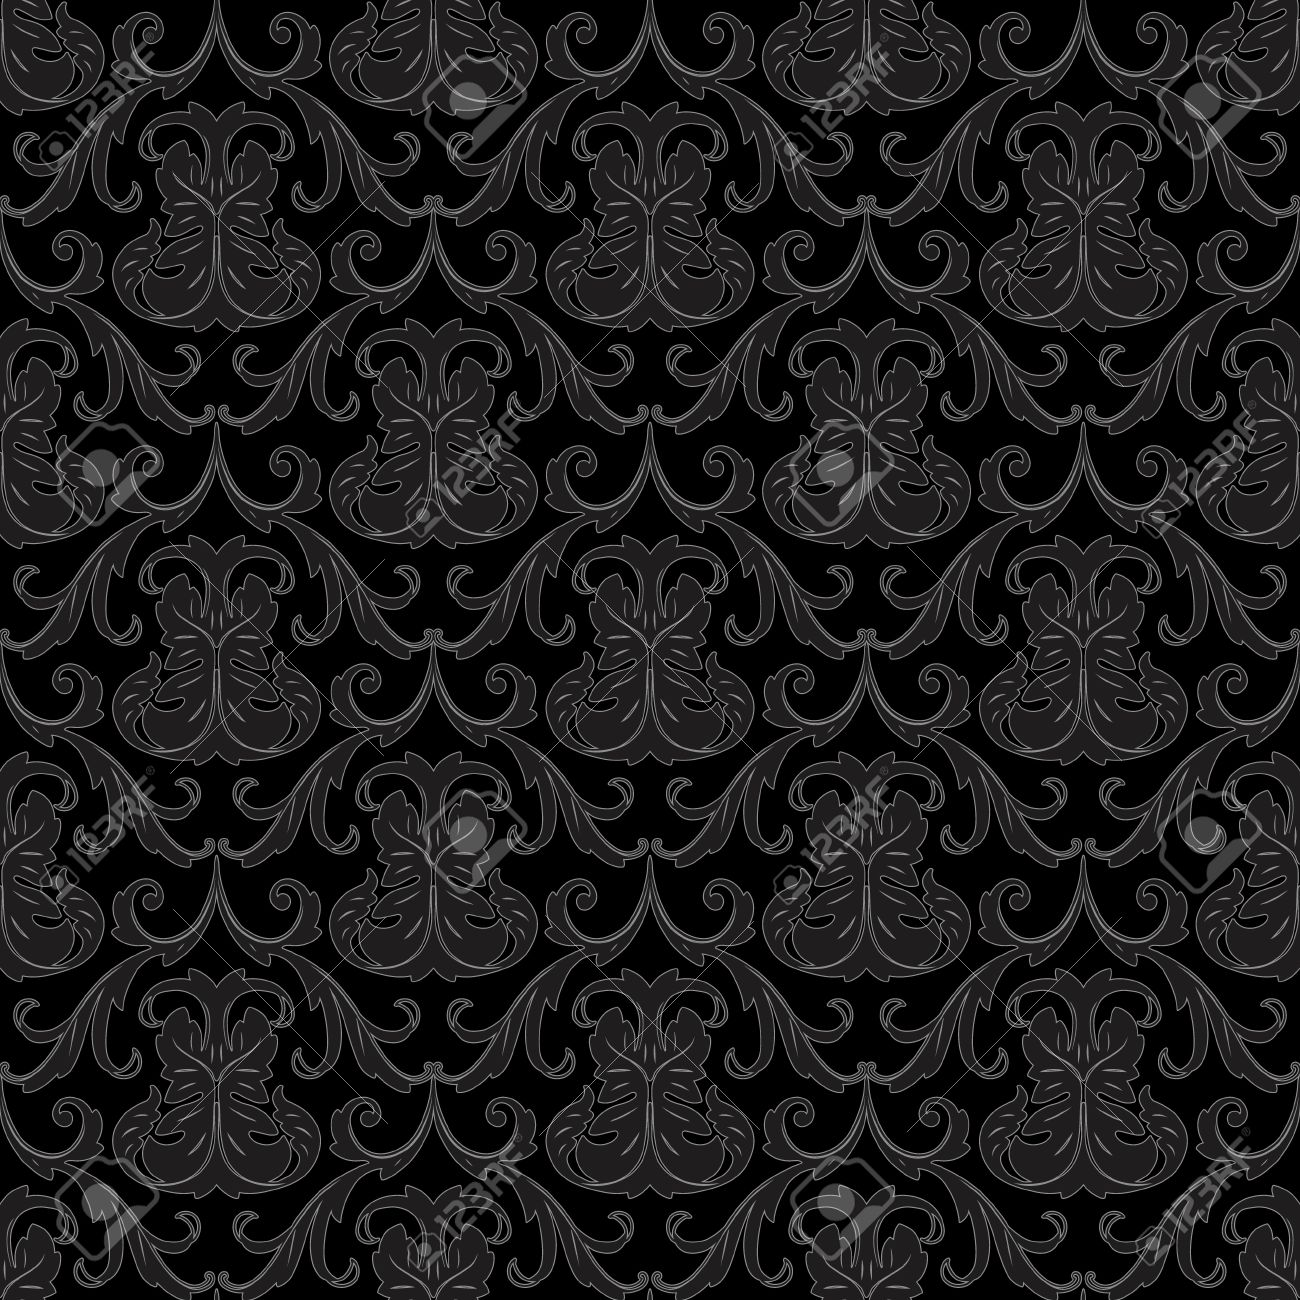 11889505 seamless black floral abstract wallpaper pattern background